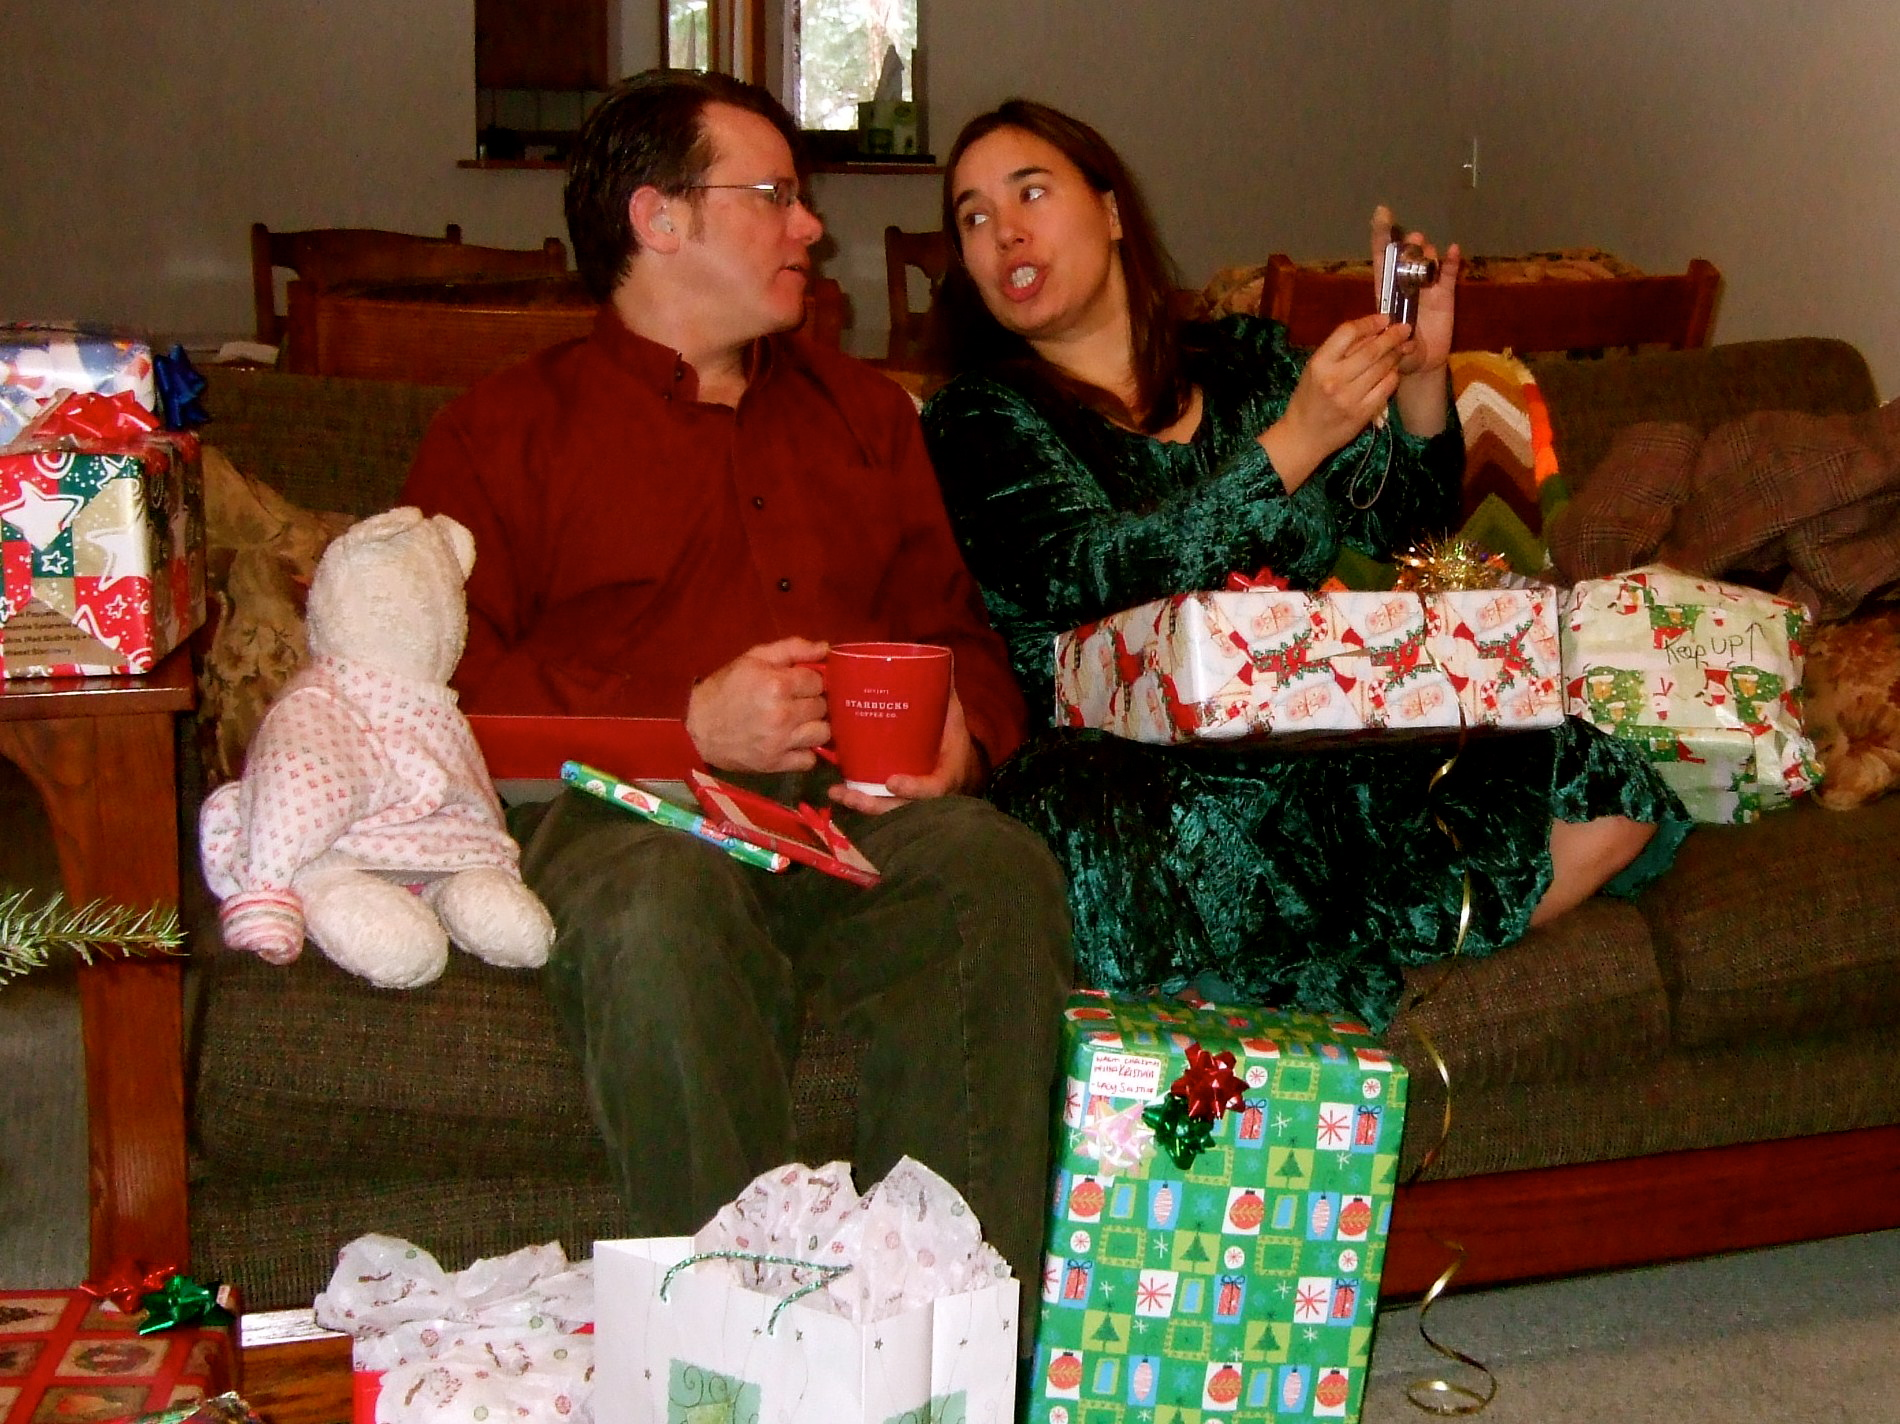 William & Kristina, Celebrating Christmas at the River House, Plain-Lake Wenatchee-Leavenworth Area, Tuesday 25 December 2007.